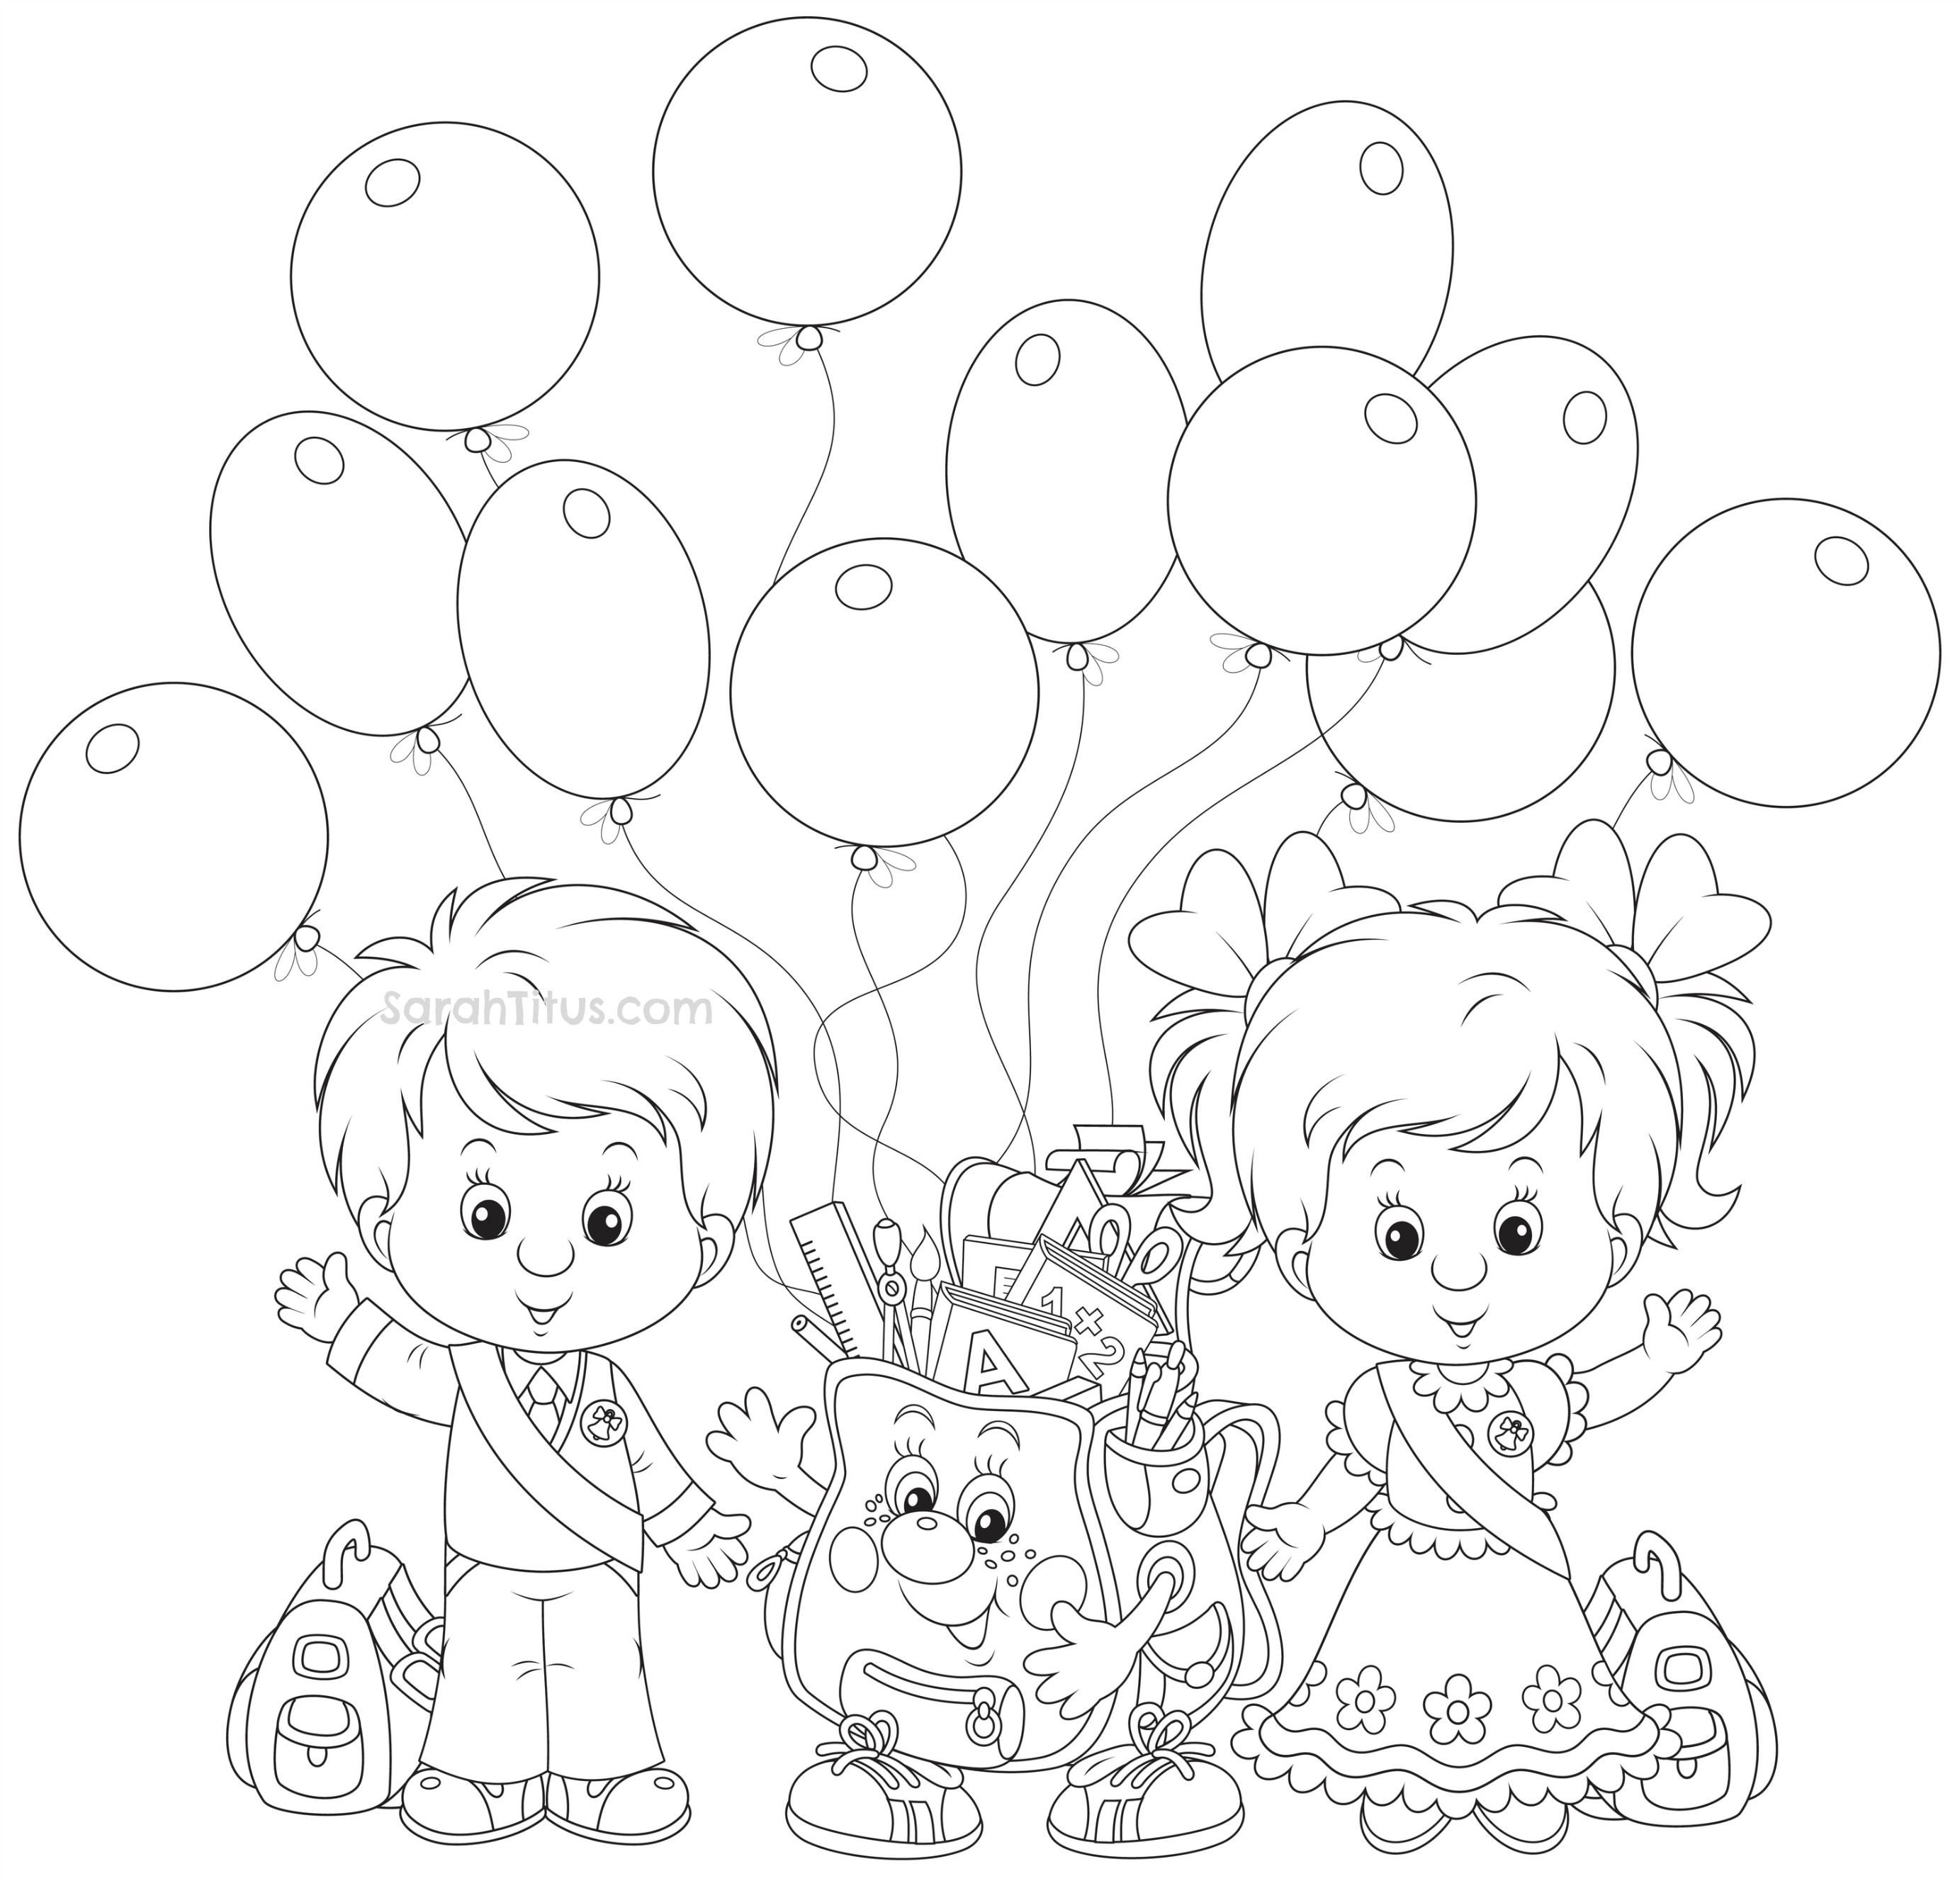 2766x2654 Cool Back To School Coloring Pages Sarah Titus Free Coloring